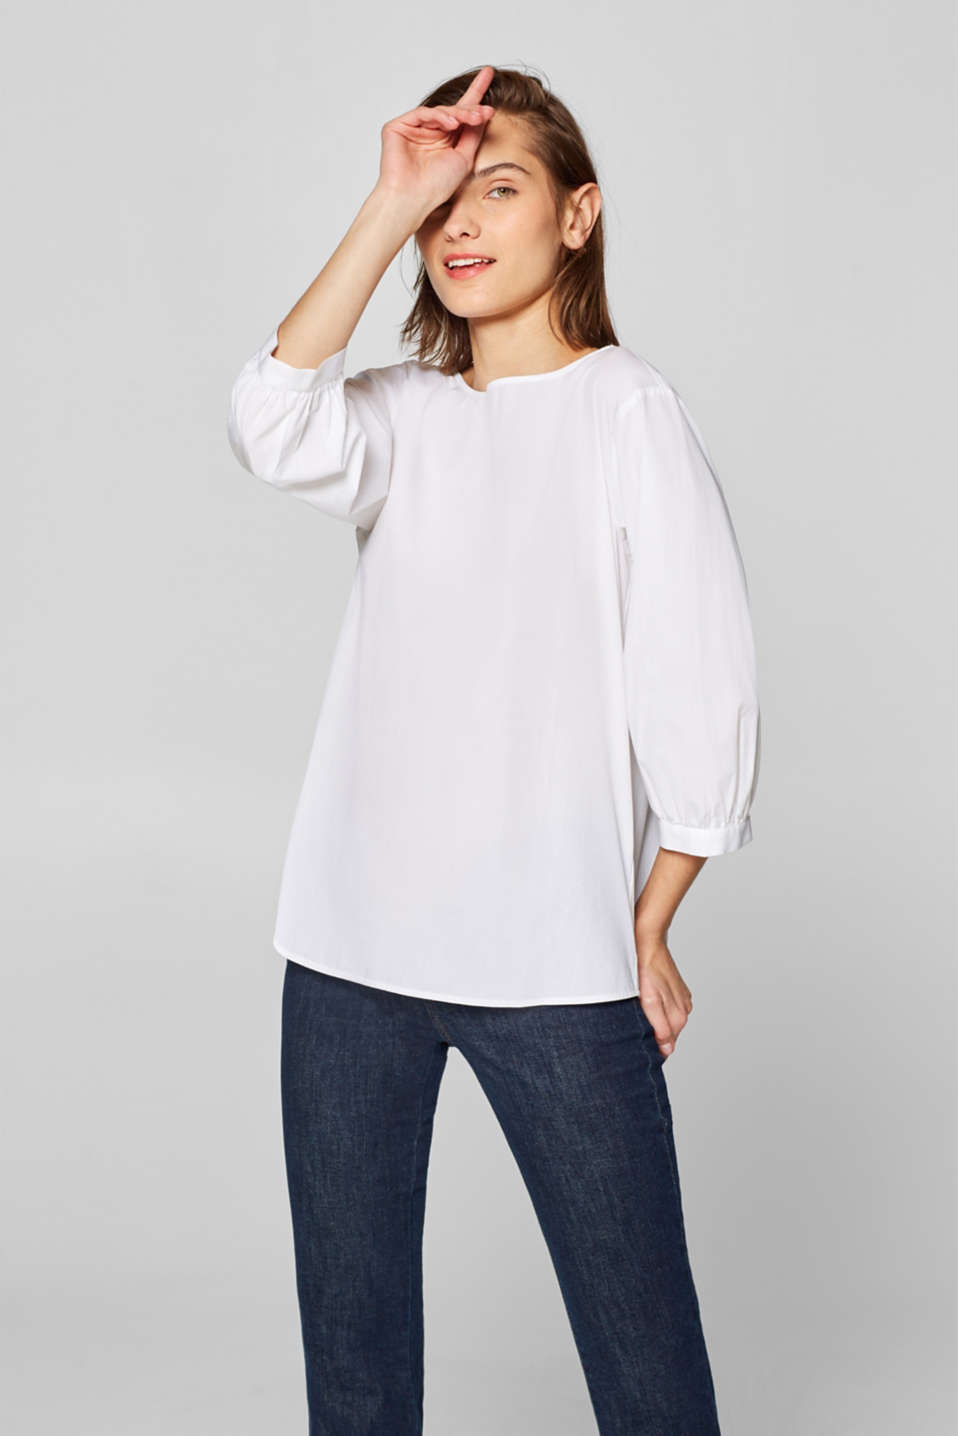 Esprit - Blouse with an three-quarter length sleeves, 100% cotton